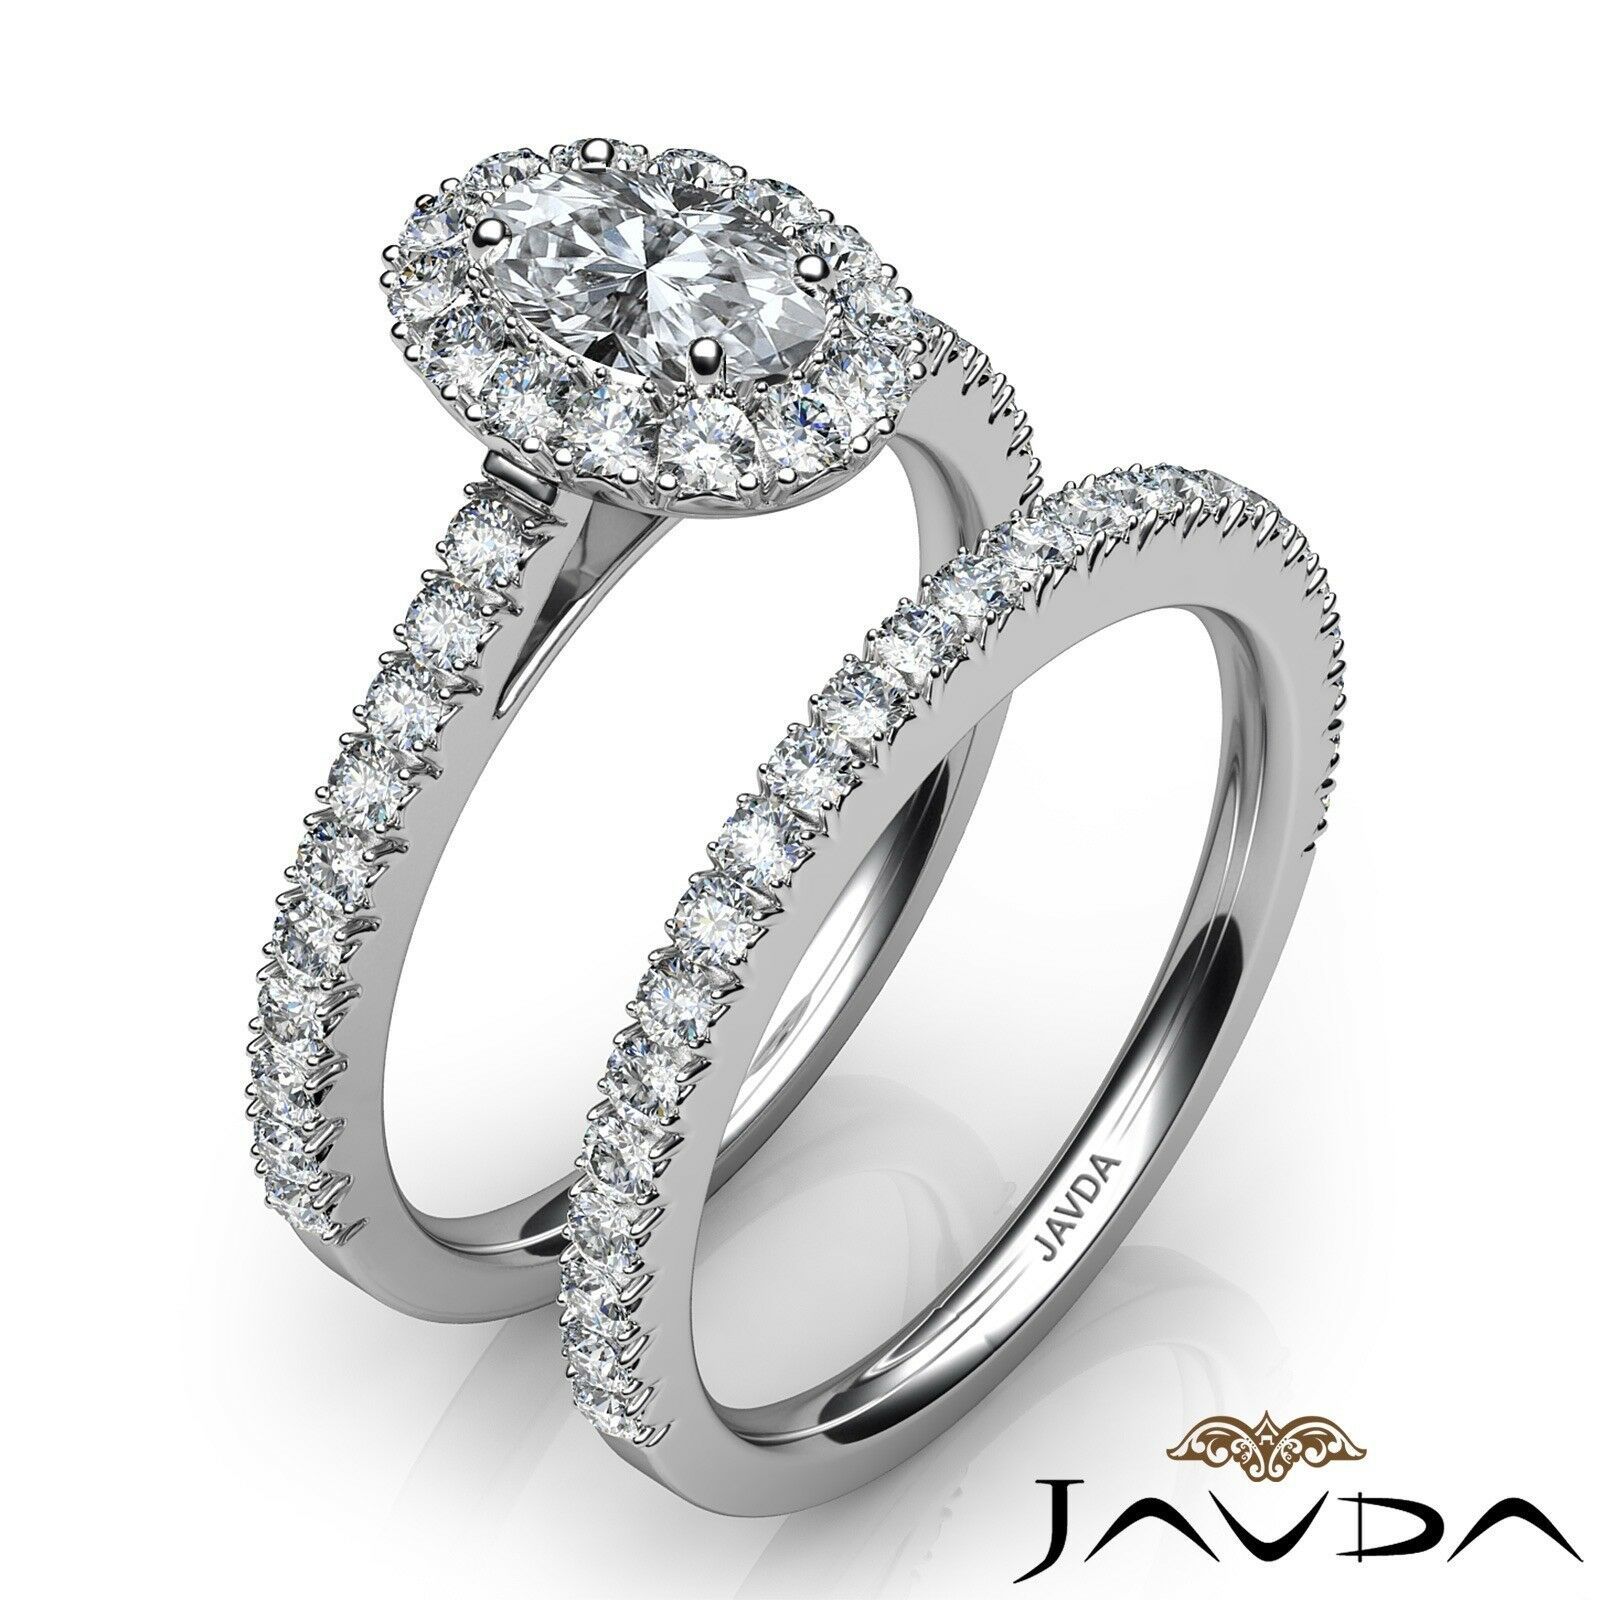 2.21ctw Halo Bridal French Pave Oval Diamond Engagement Ring GIA F-VVS2 W Gold 2